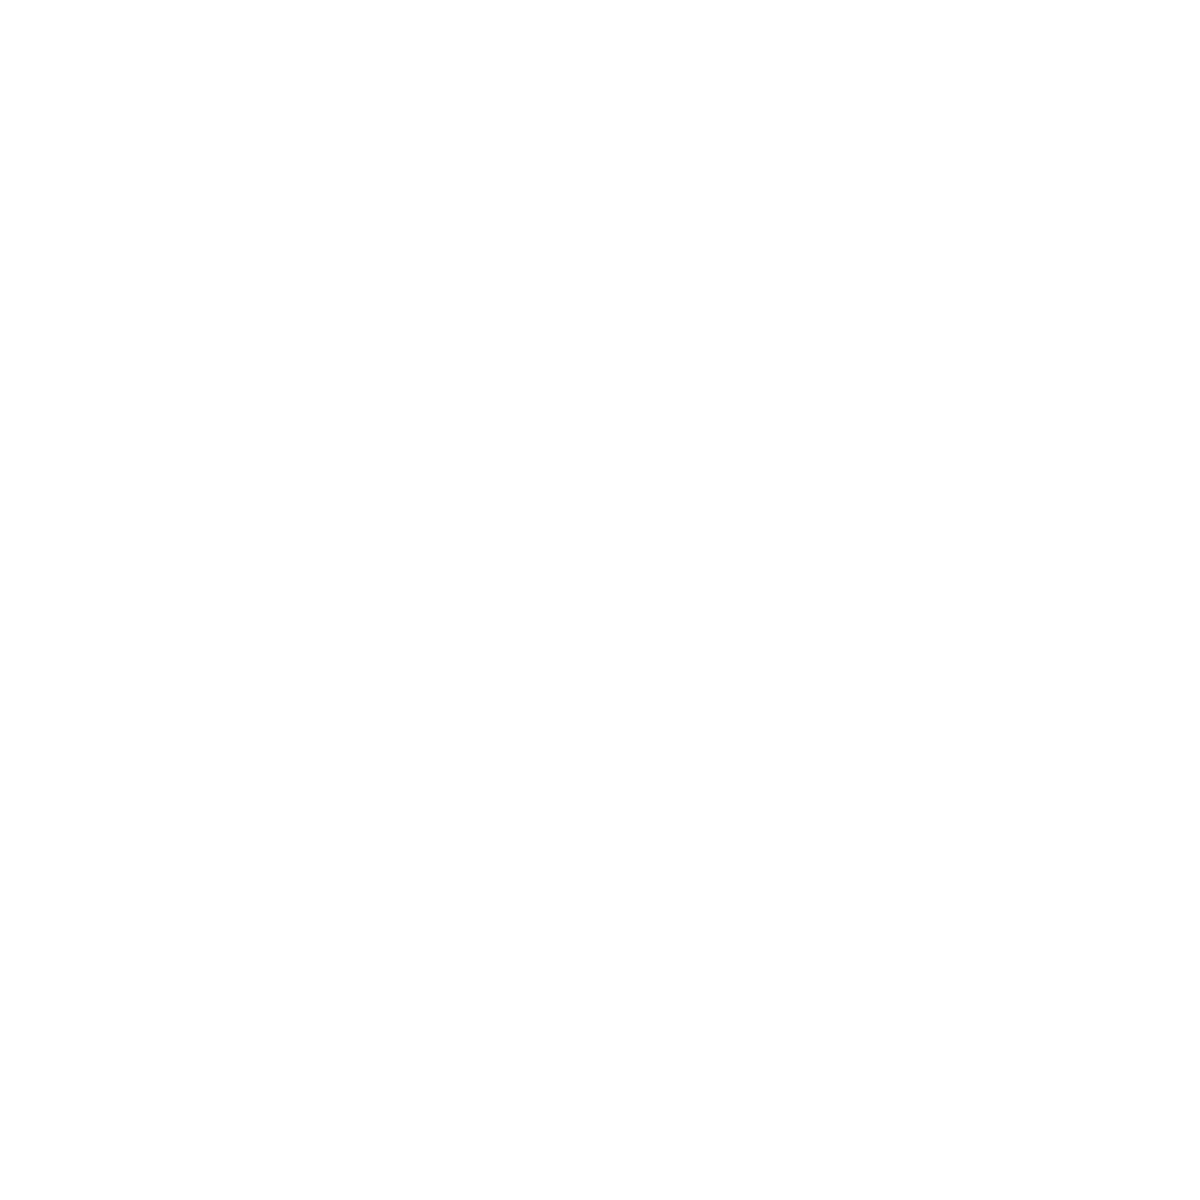 Abingdon church of Christ